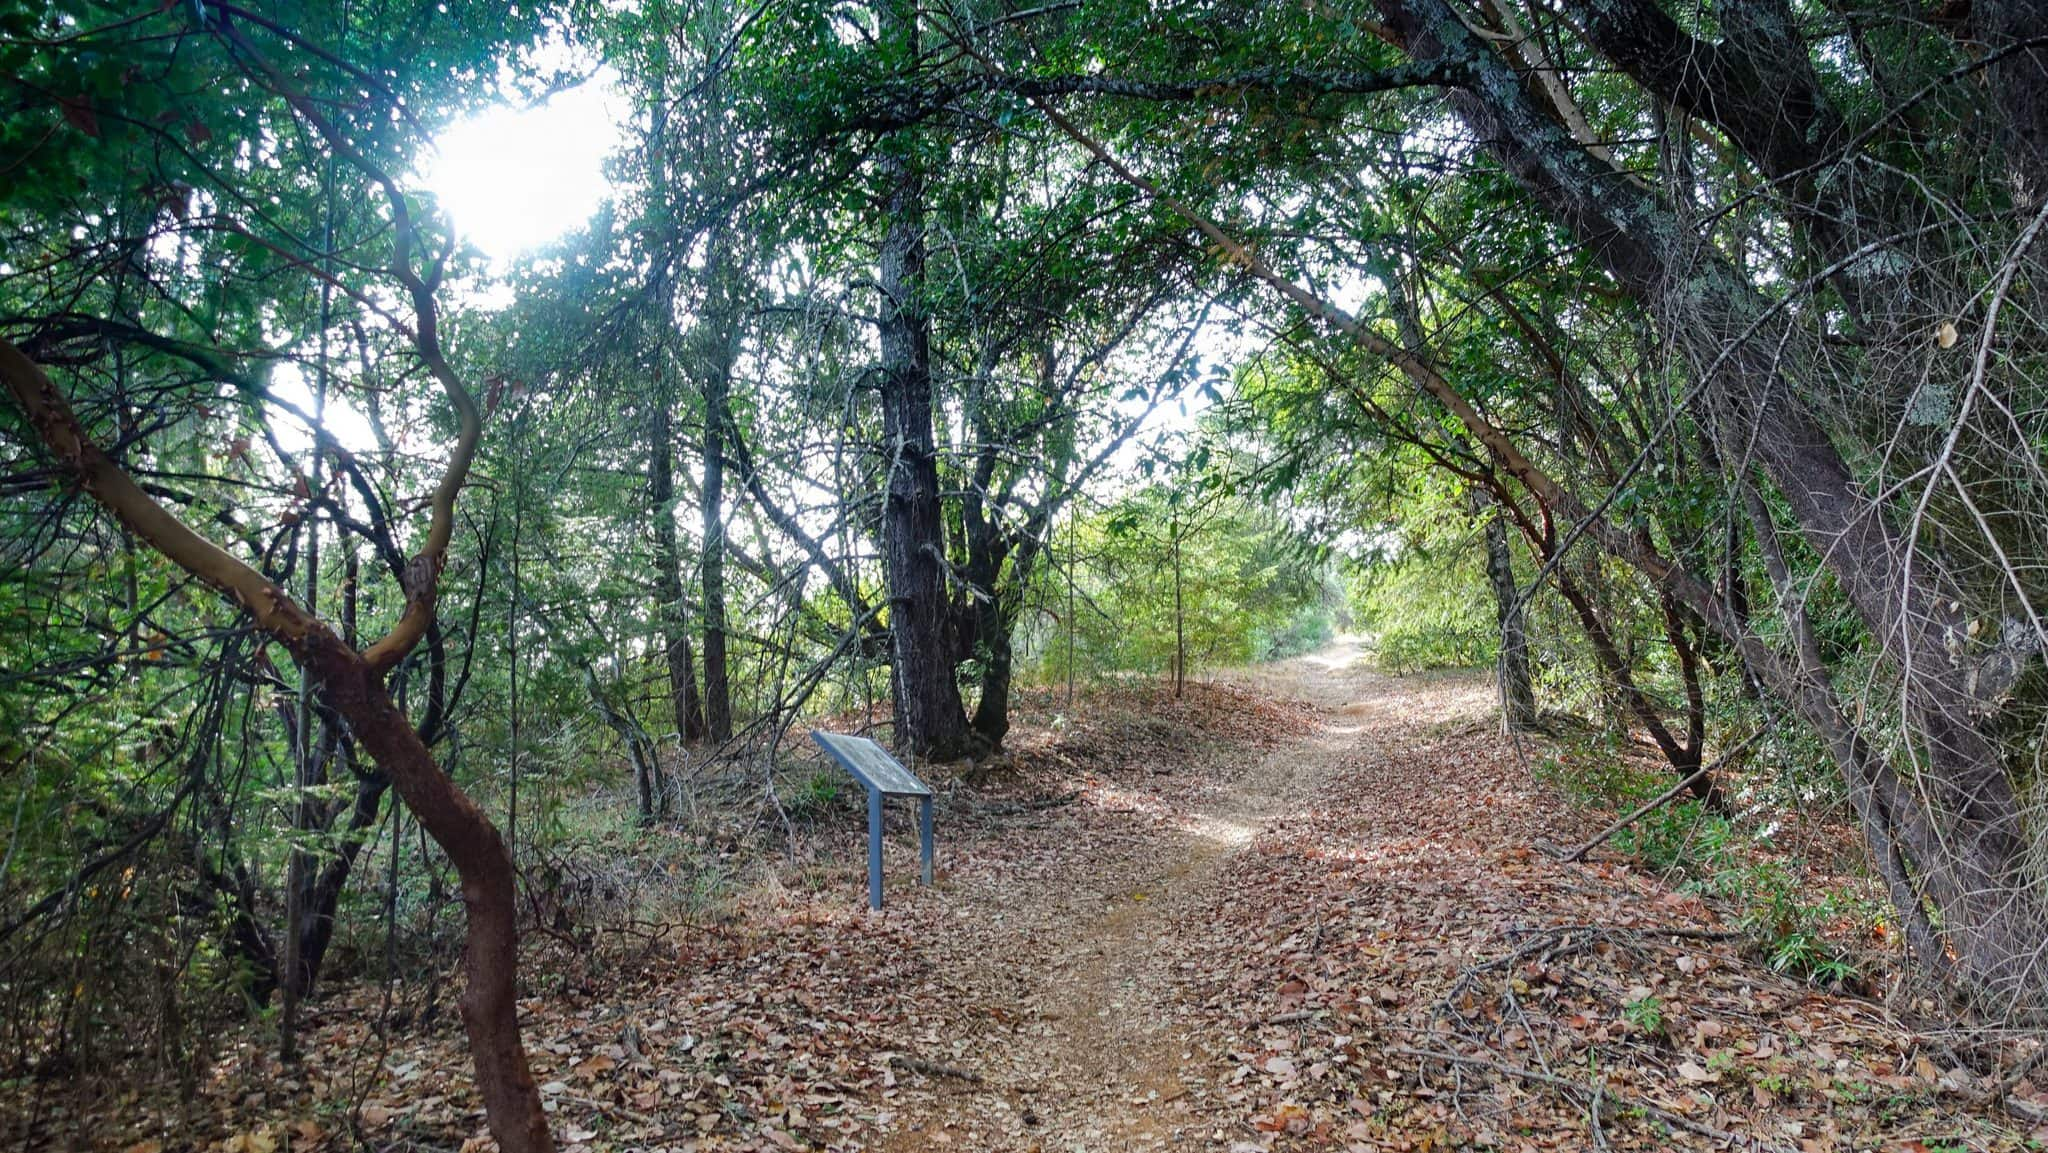 Lake Sonoma Trails Can Be Pretty Steep and Long.